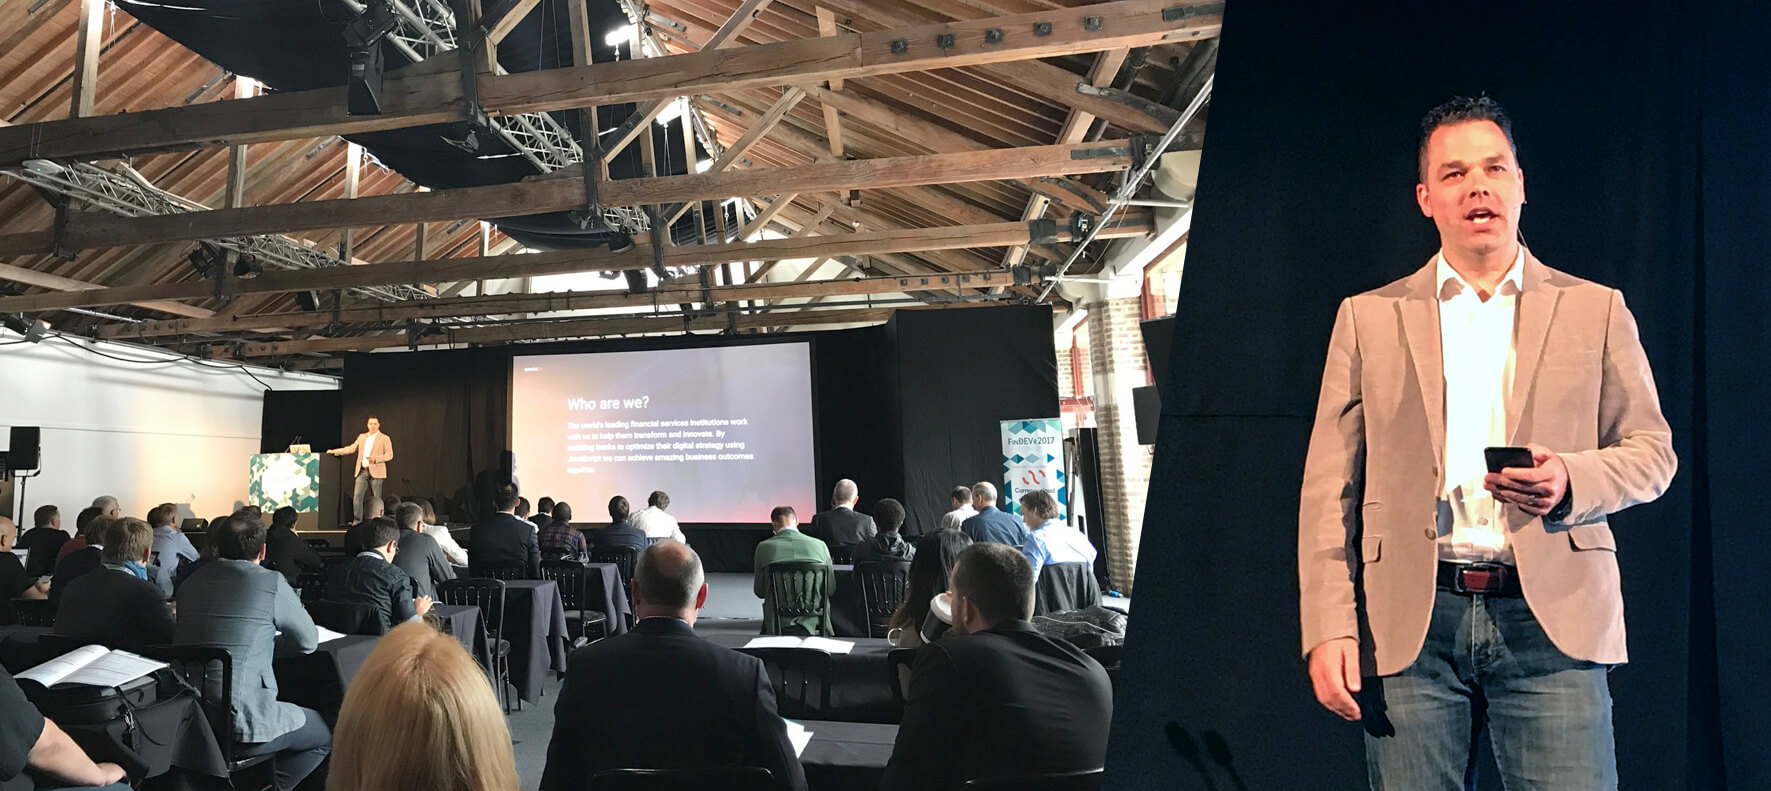 Doug Riches presenting at FinDEVr London 2017